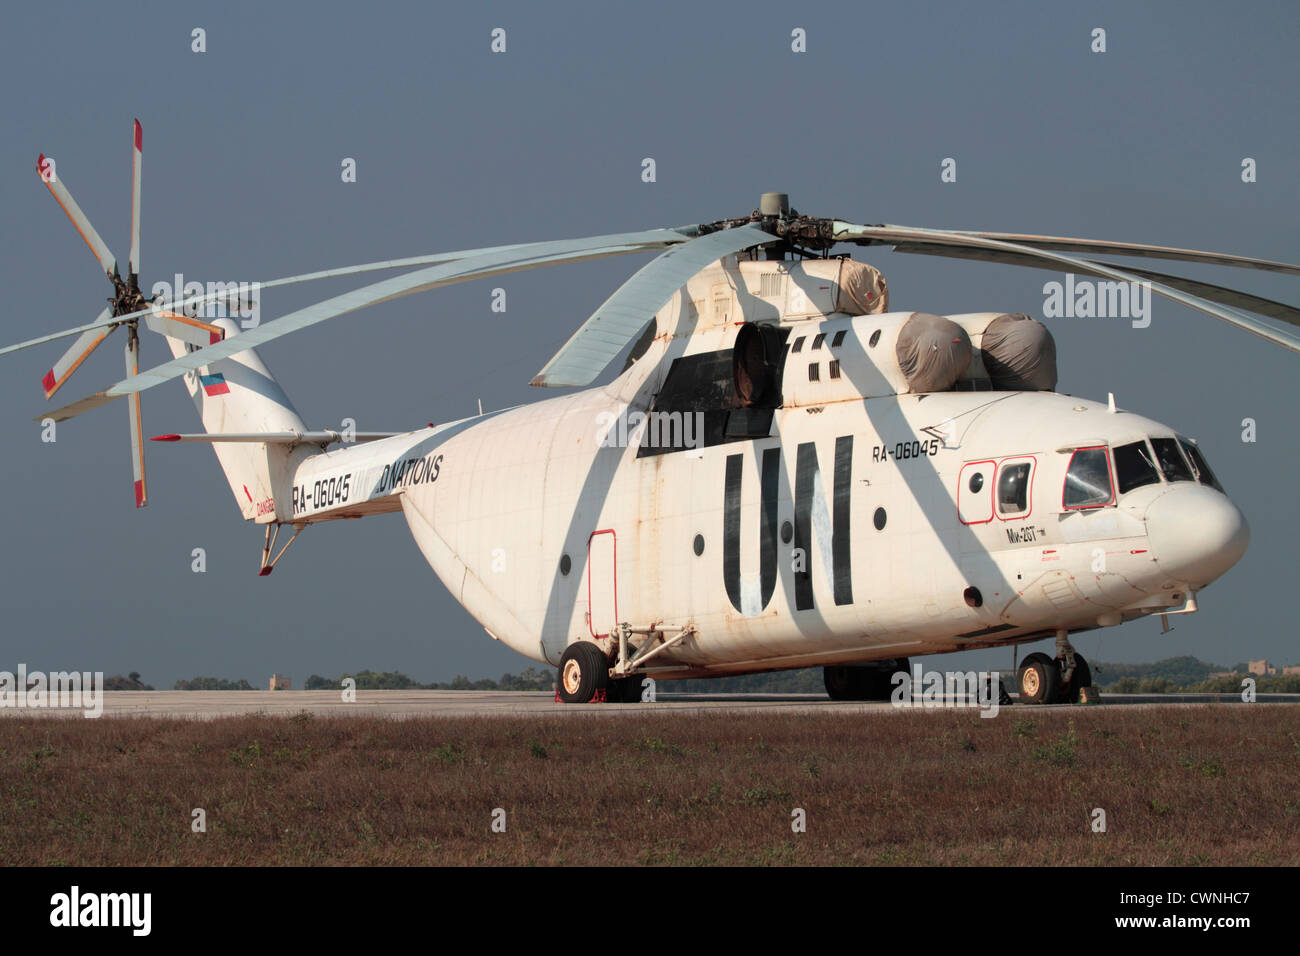 Mil Mi-26 heavy transport helicopter parked on the ground and bearing partially painted out UN titles - Stock Image